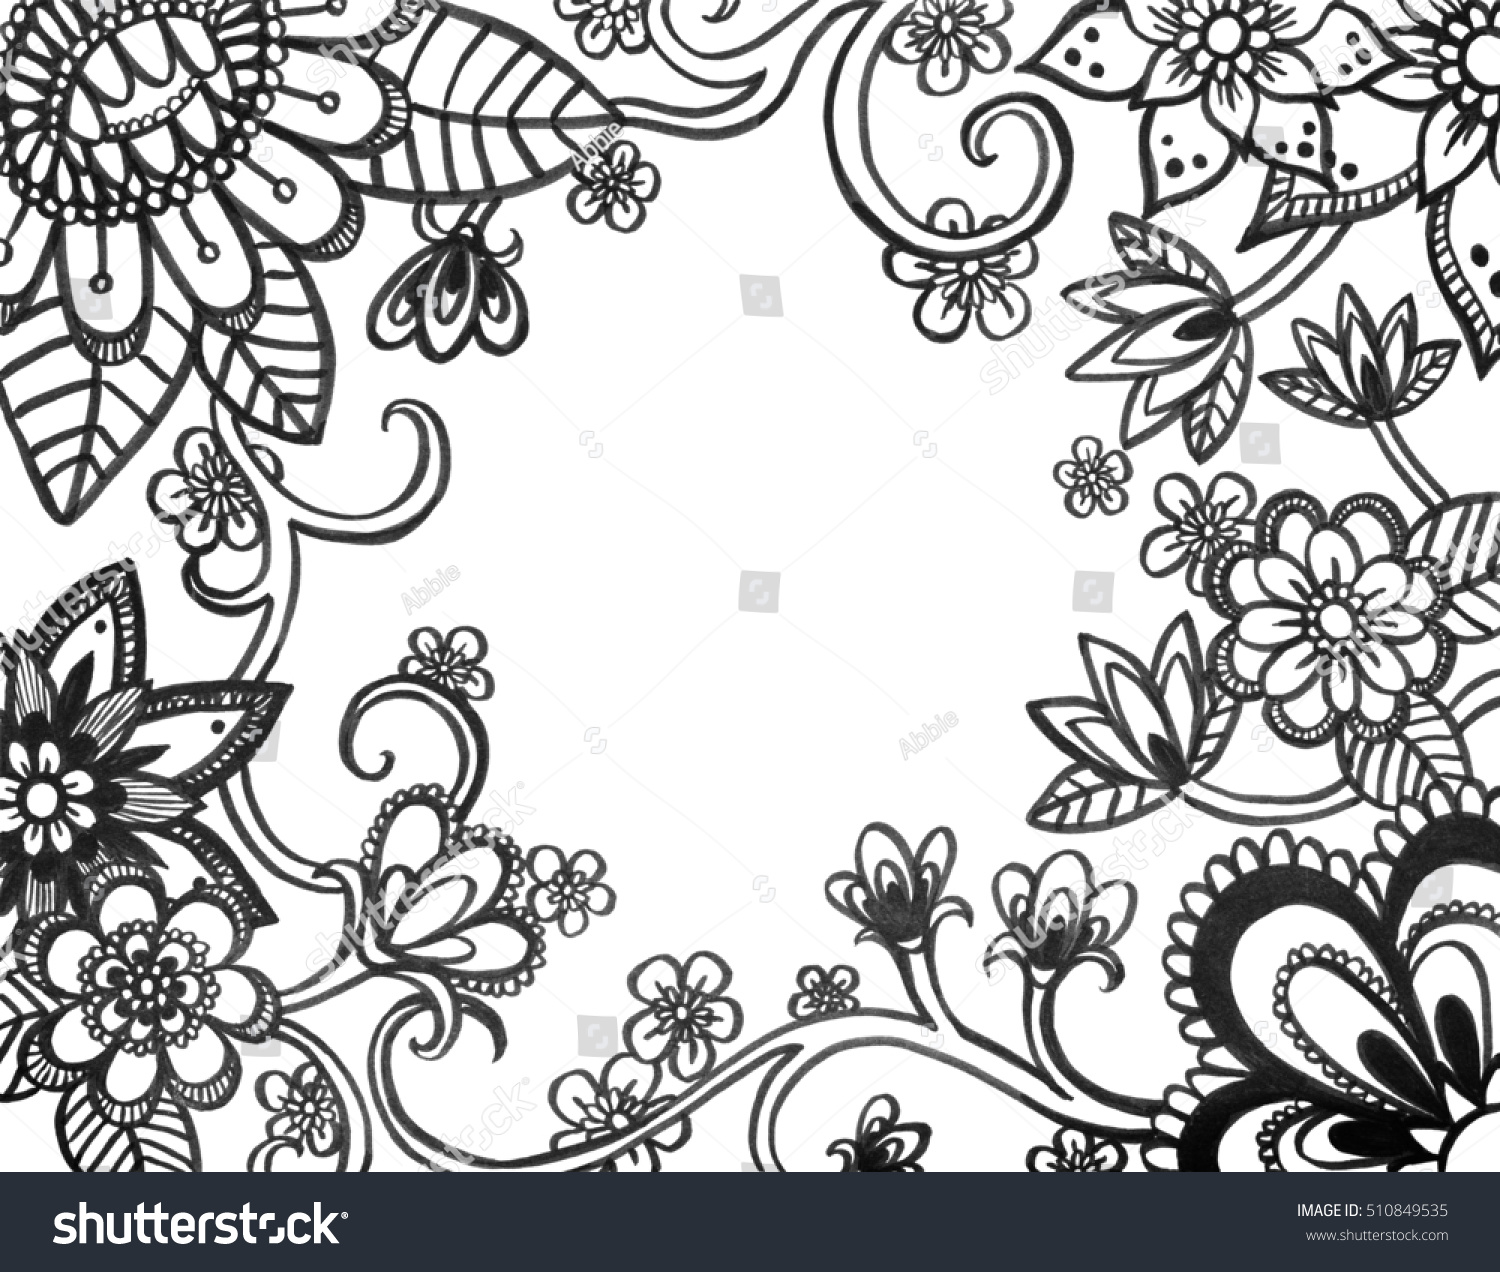 Black White Floral Design Abstract Flowers Stock Illustration